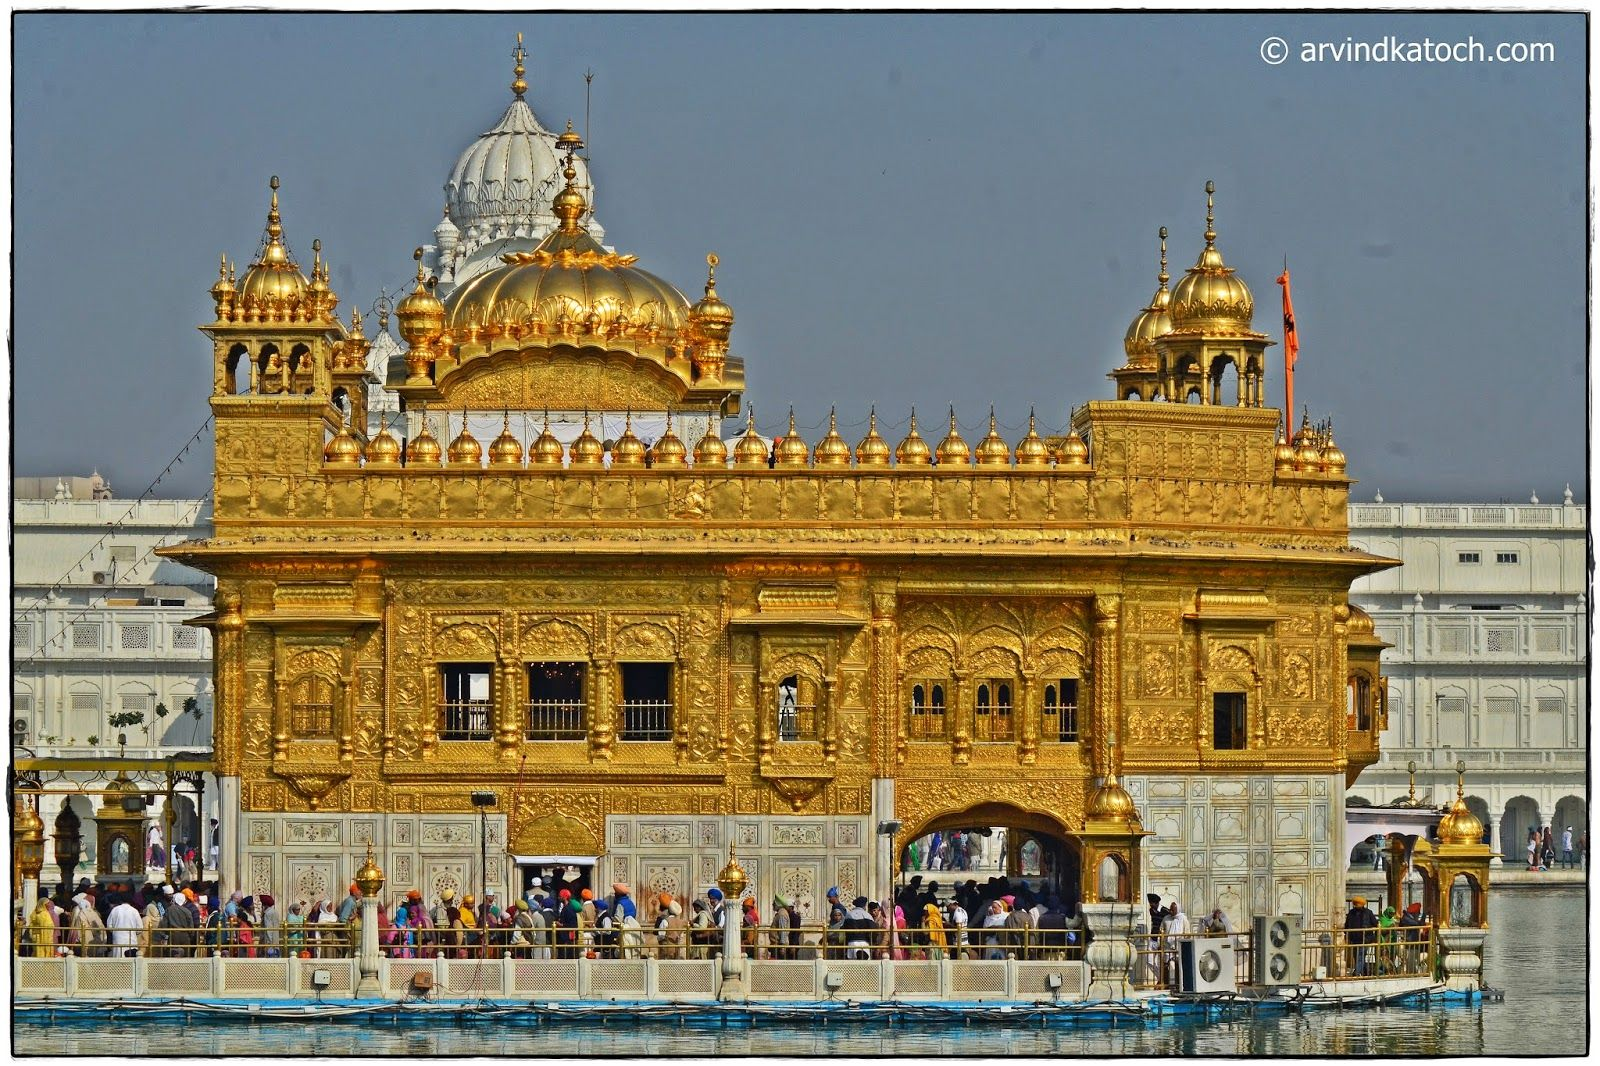 ArvindKatoch's Photography: Beautiful The Golden Temple (The Harmandir Sahib) Main Gurdawara Picture